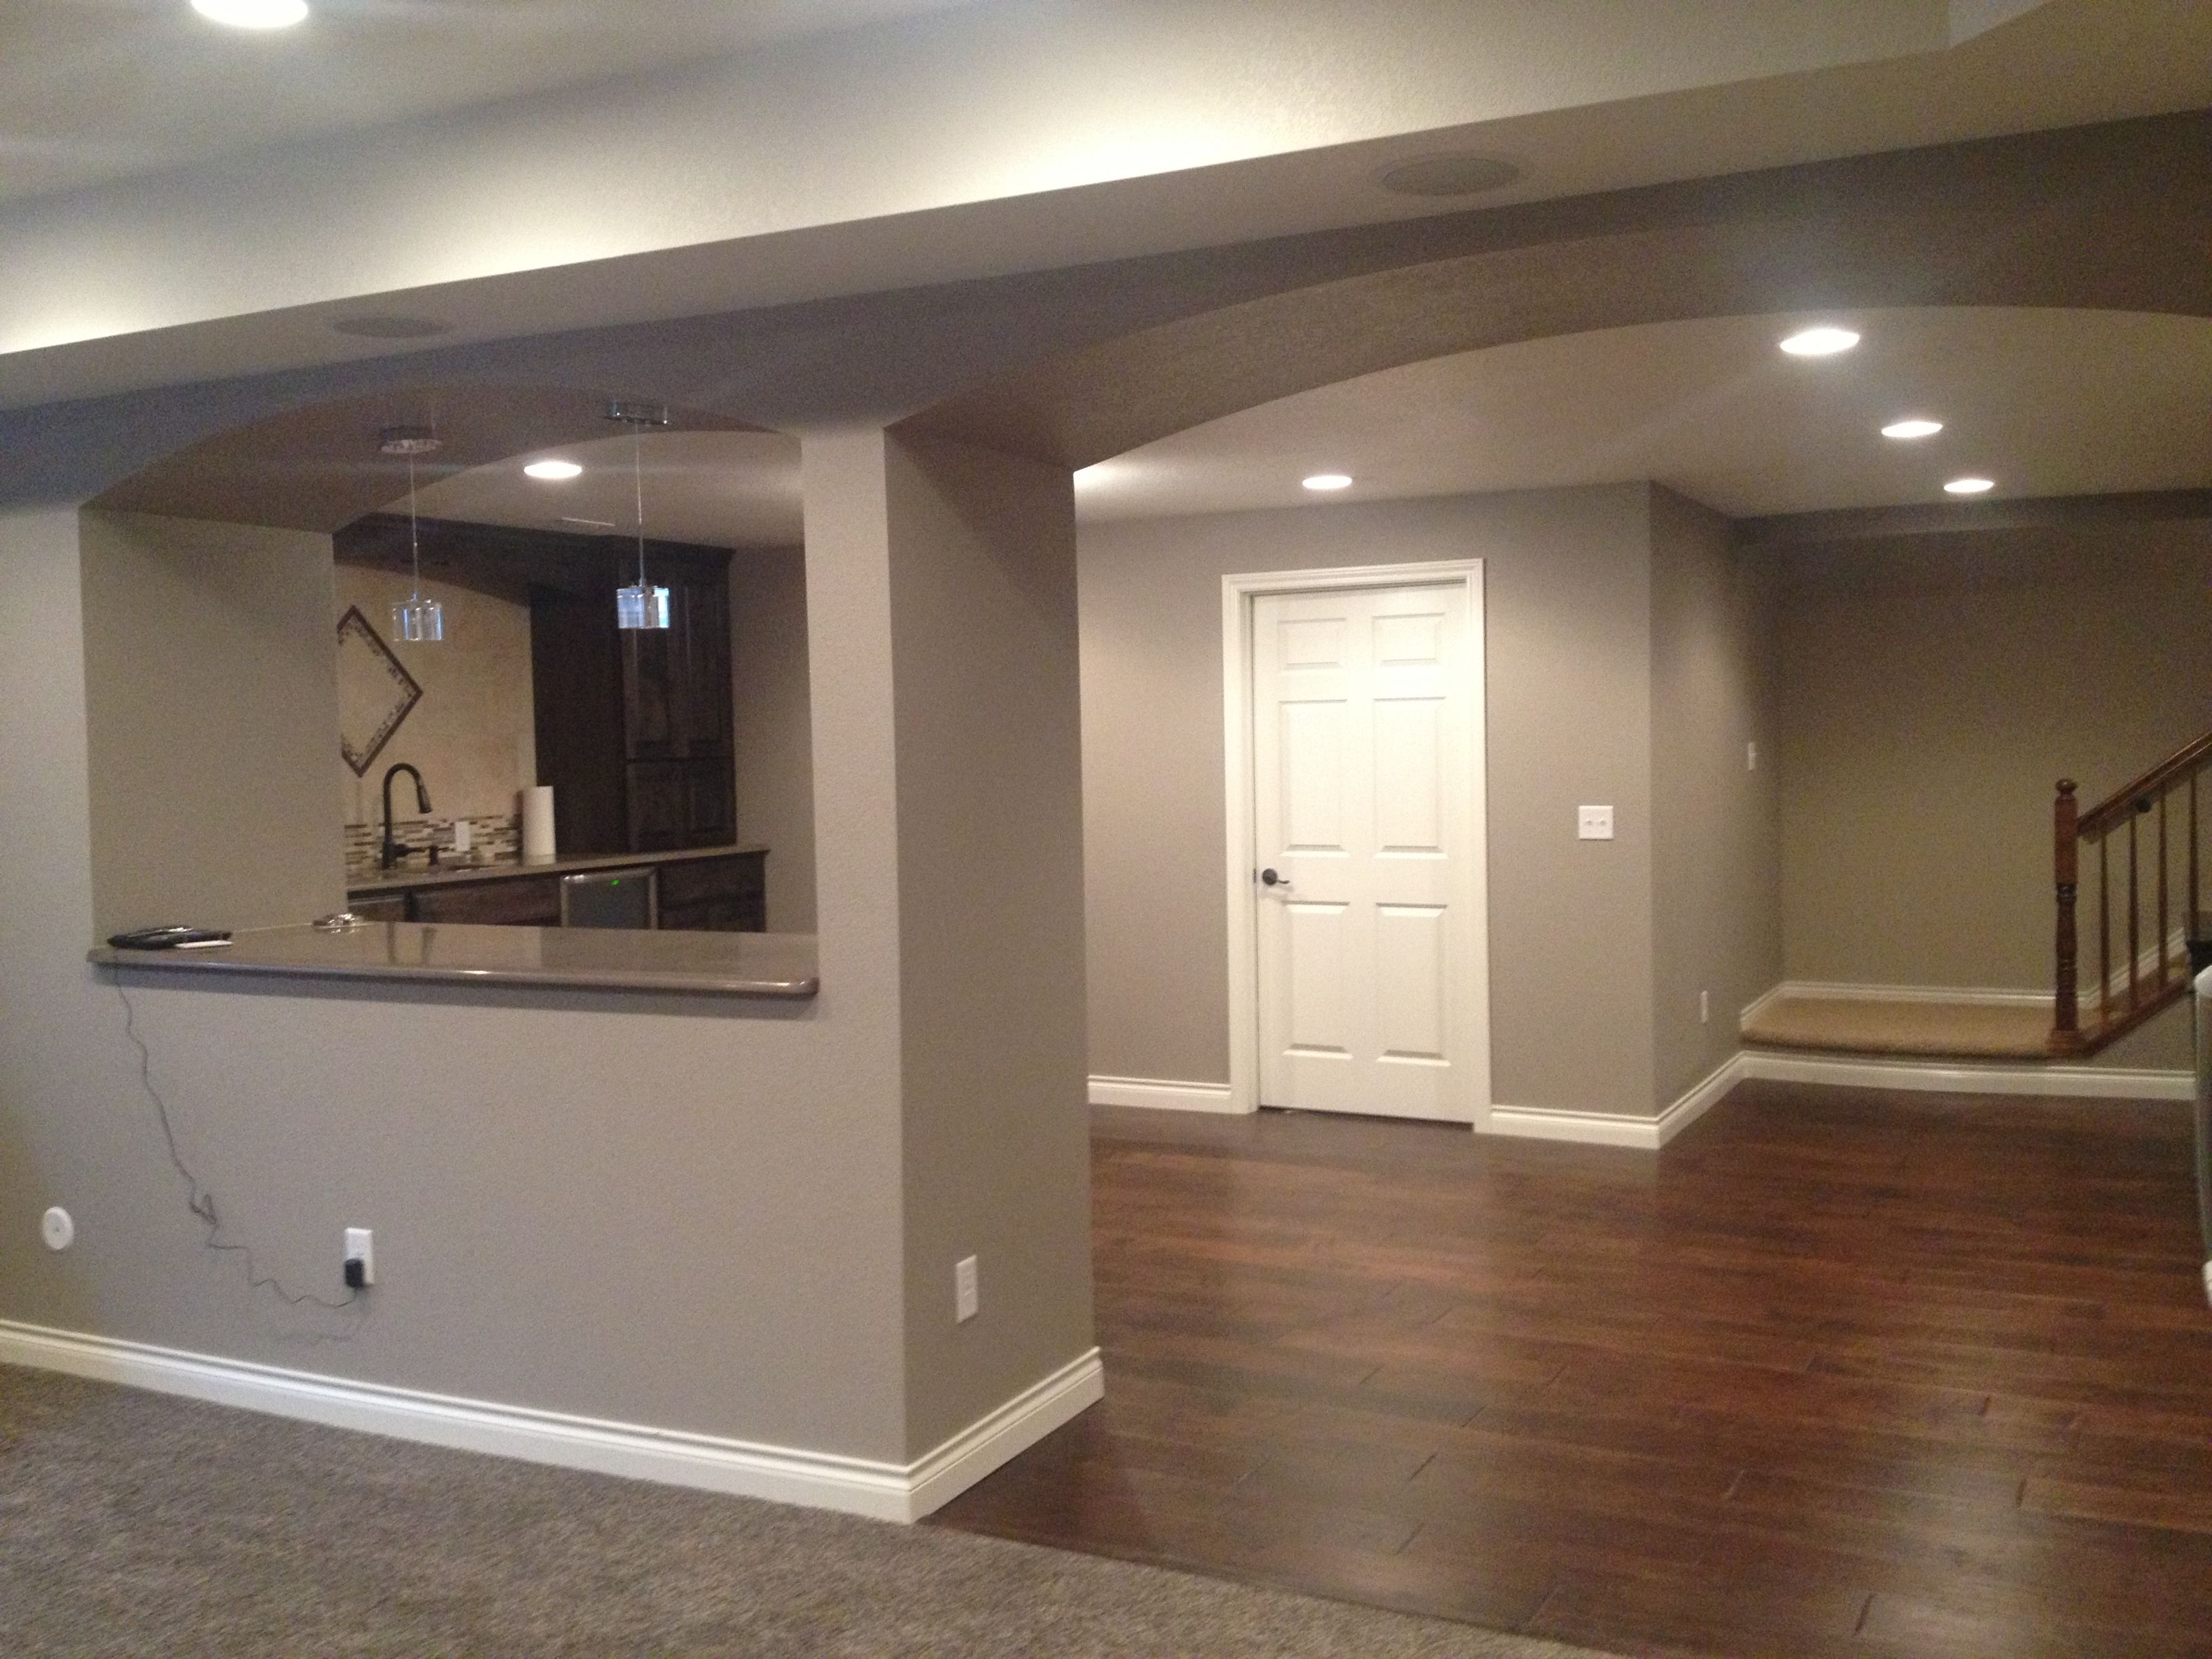 finished basement sherwin williams mega griege home decor ideas rh pinterest com paint colors for basement walls paint colors for basement walls